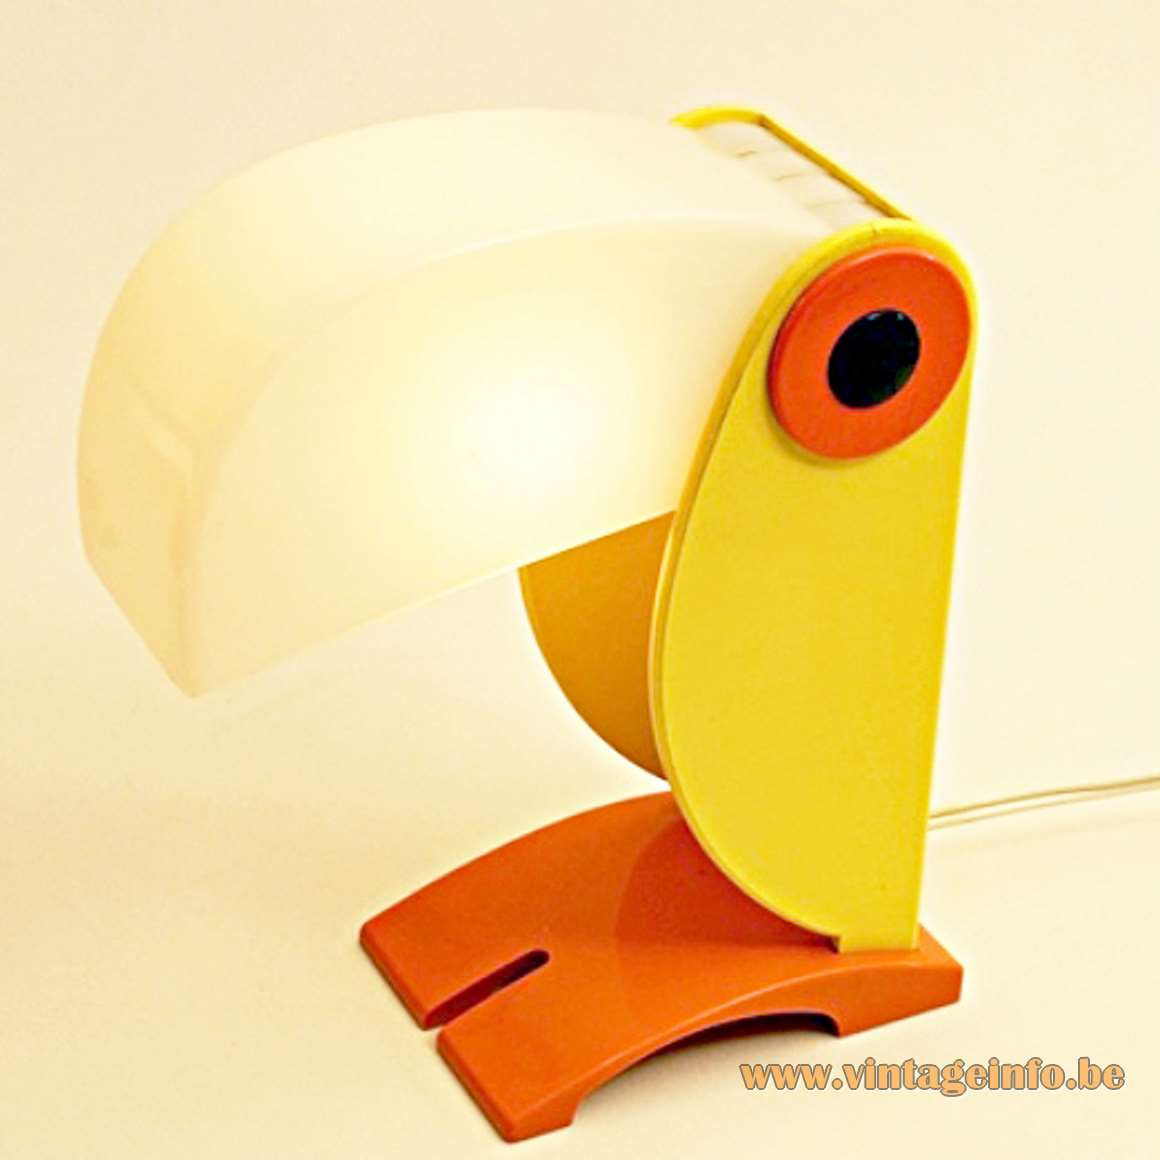 Toucan Table Lamp - Old Timer Ferrari - Yellow